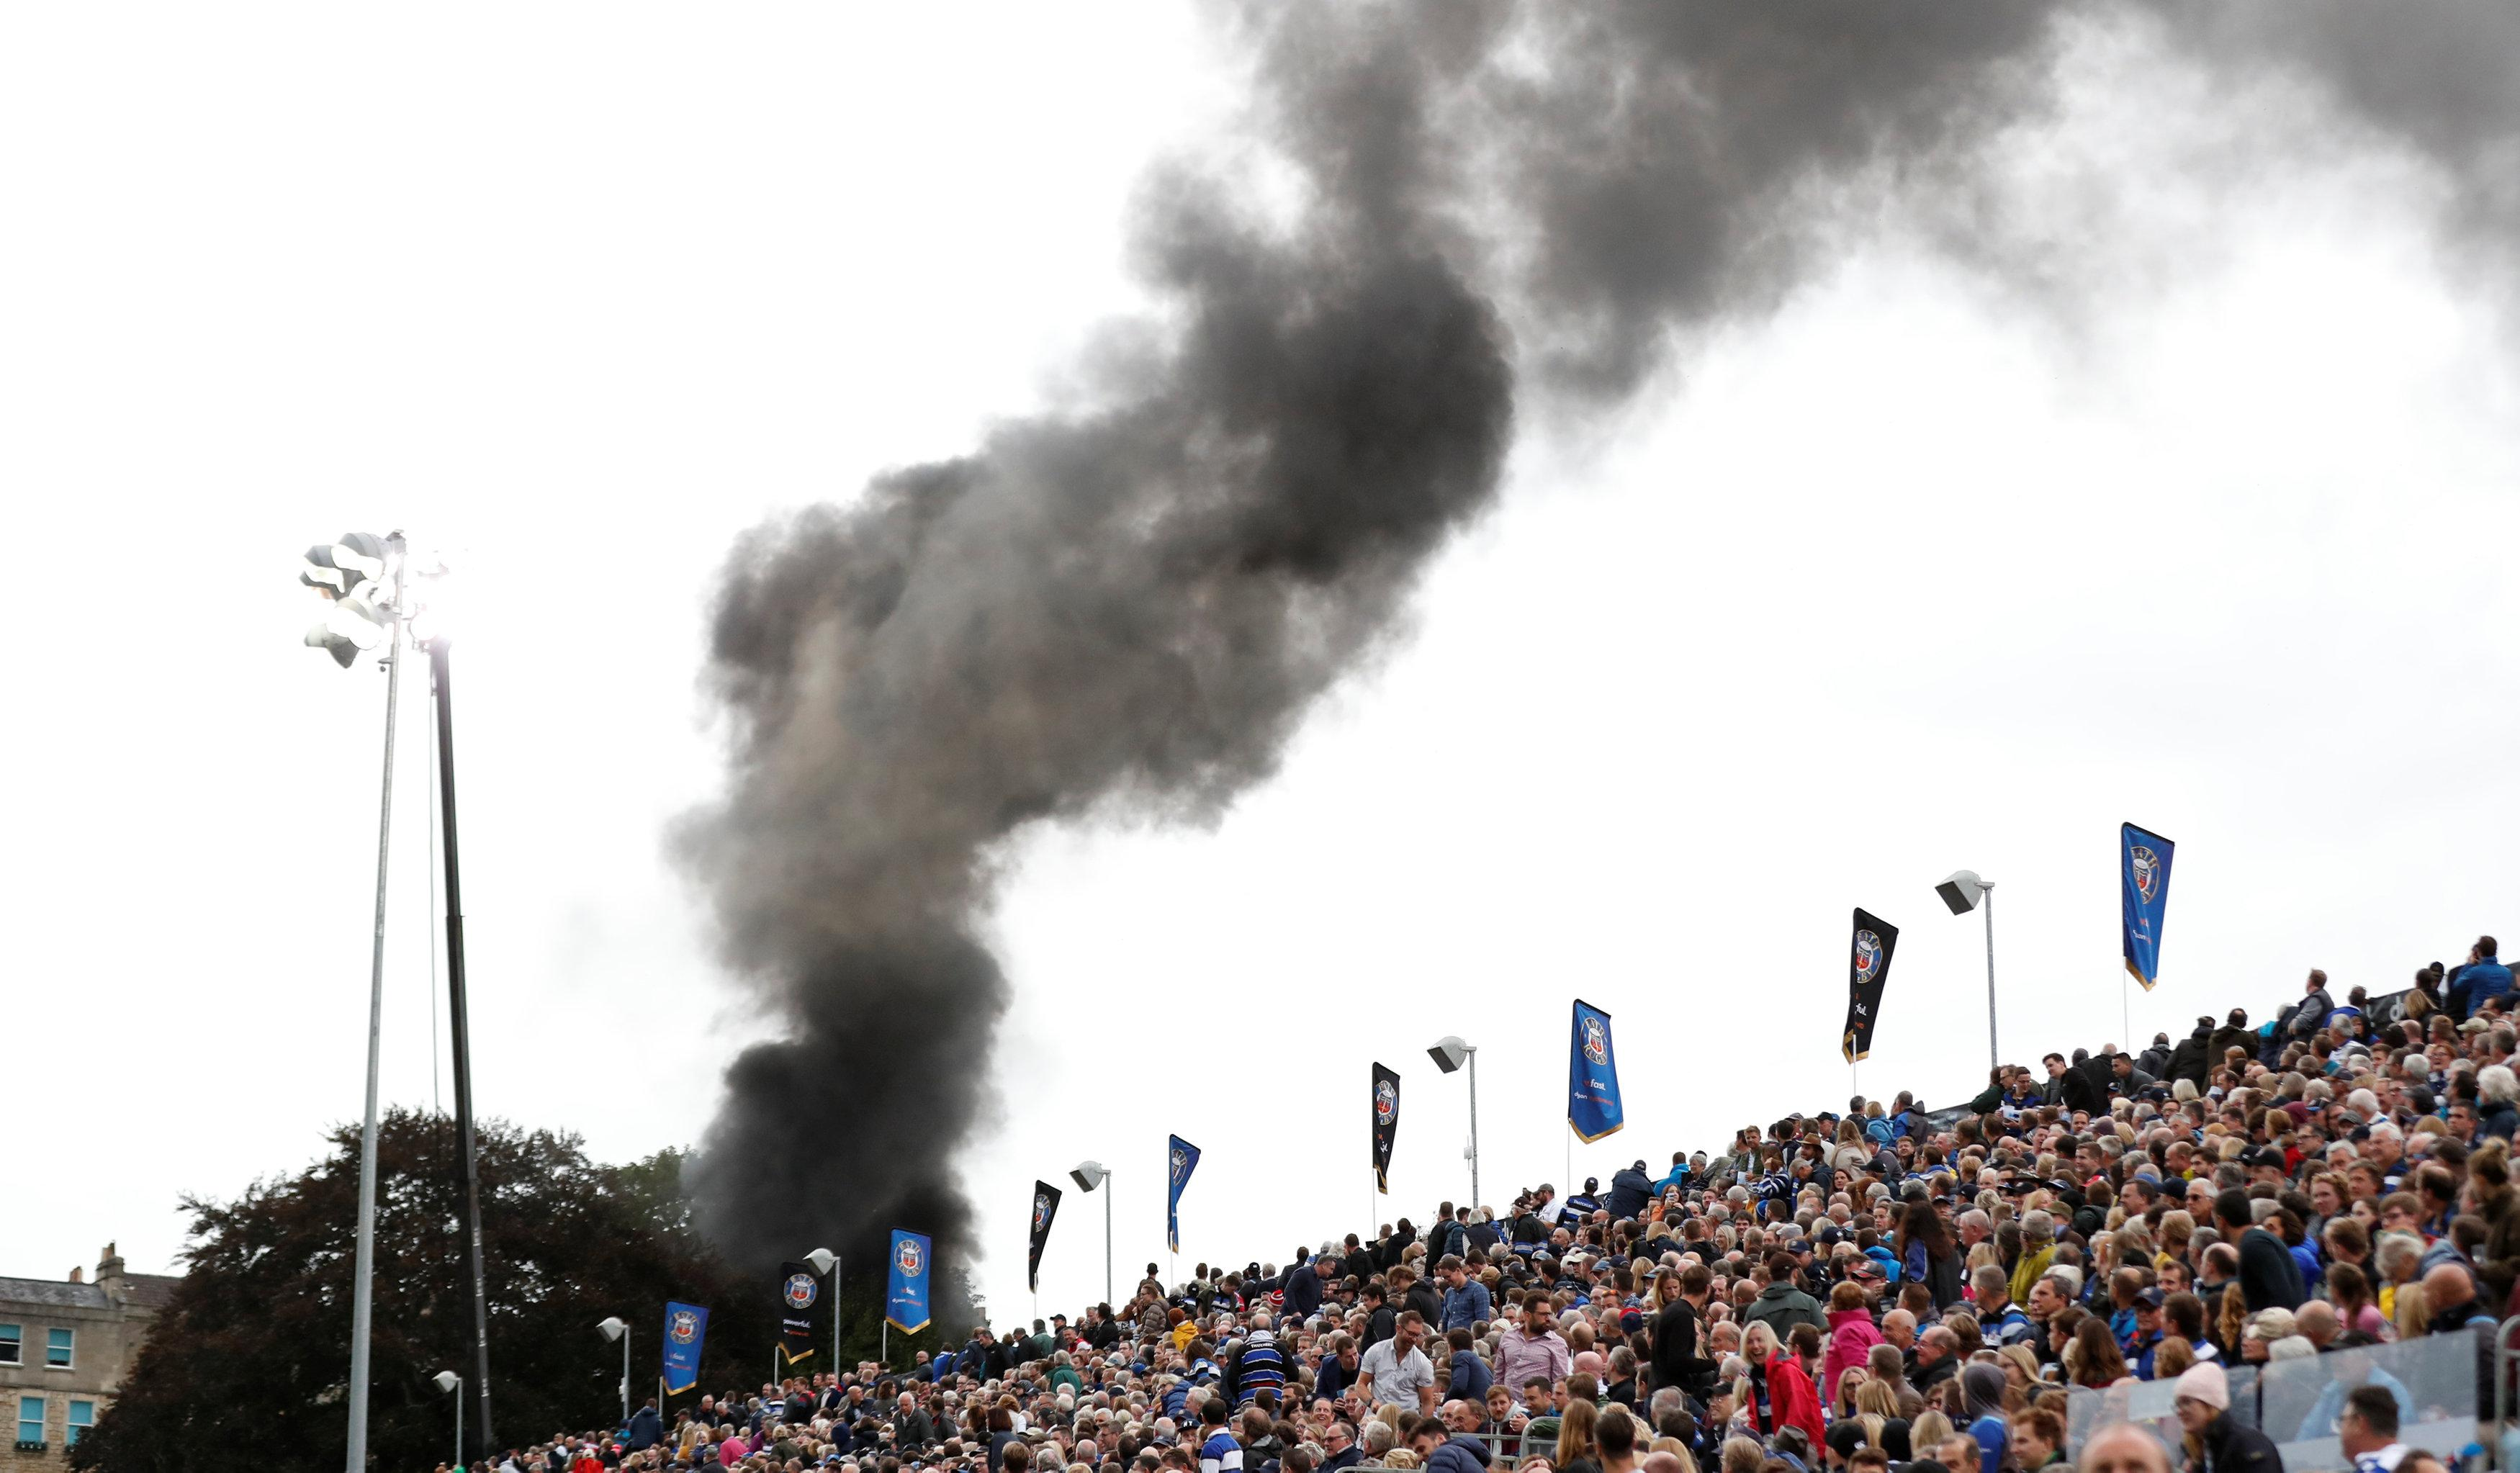 Fans and TV viewers watching Bath vs Gloucester could see a thick plume of black smoke